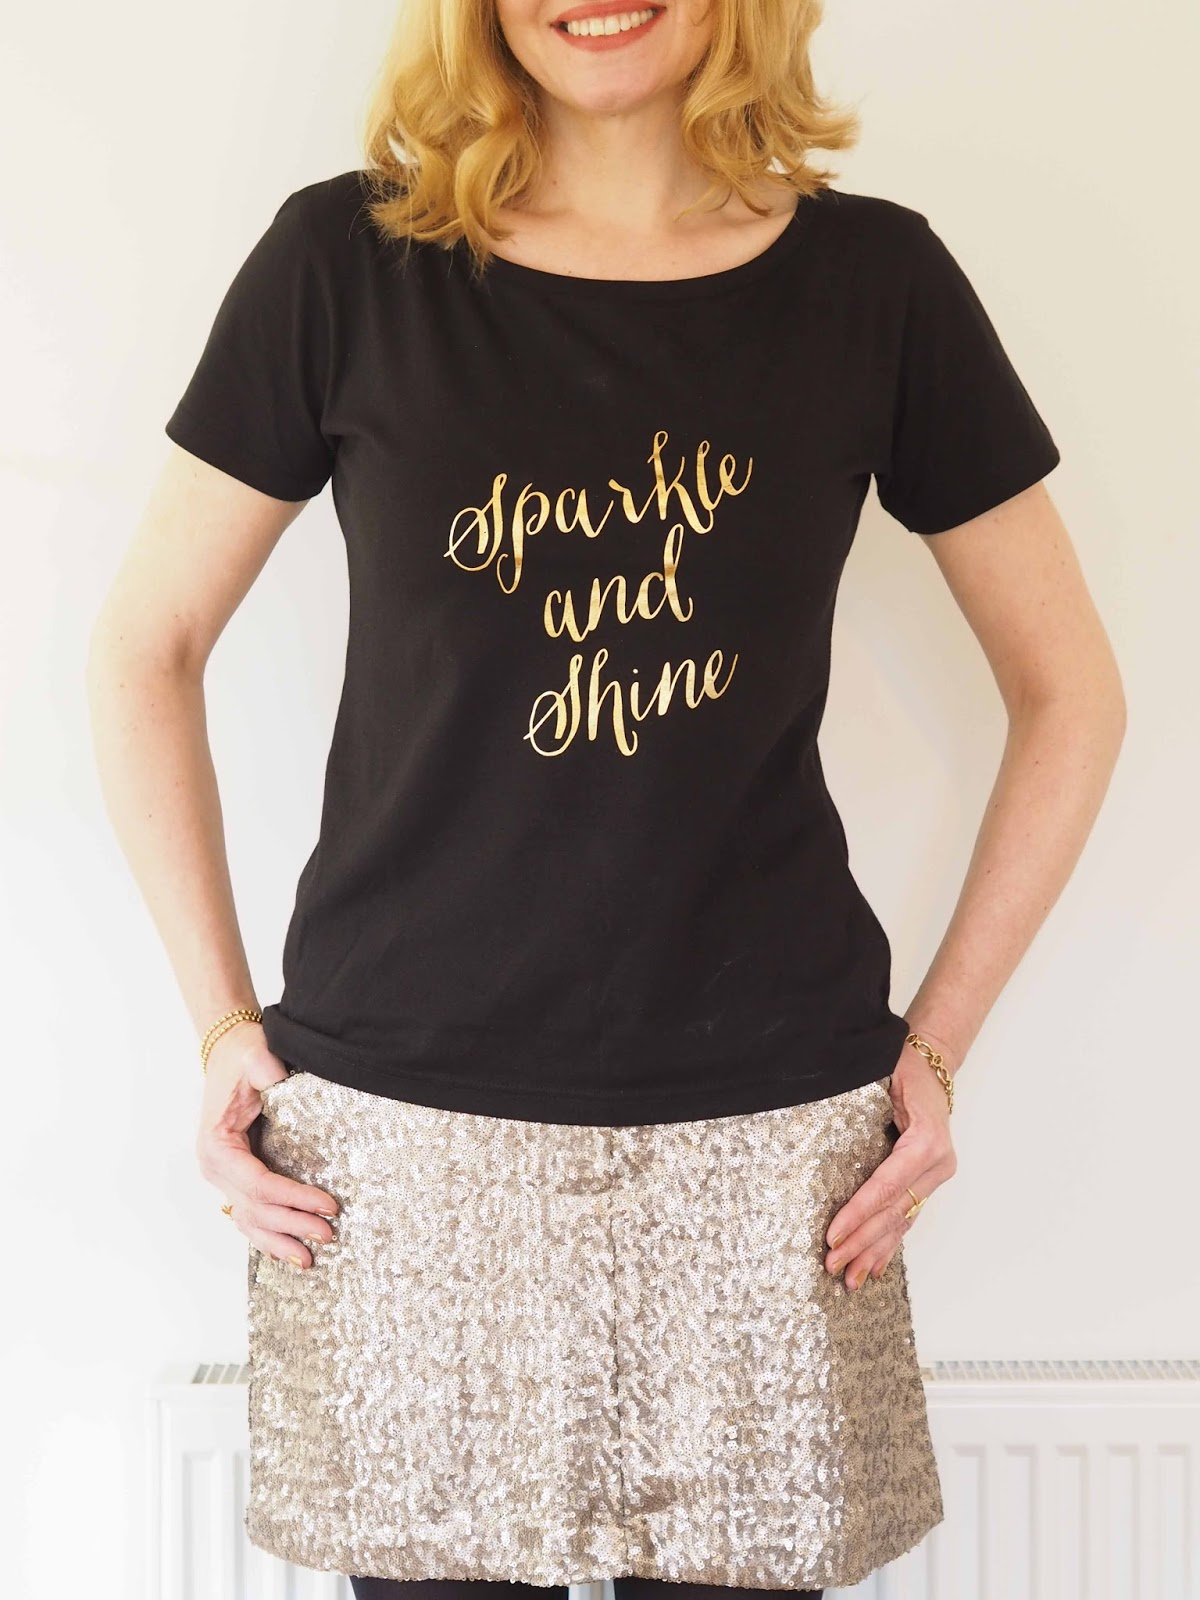 Sparkle and shine tee shirt, pale gold sequin a-line mini skirt, over 40